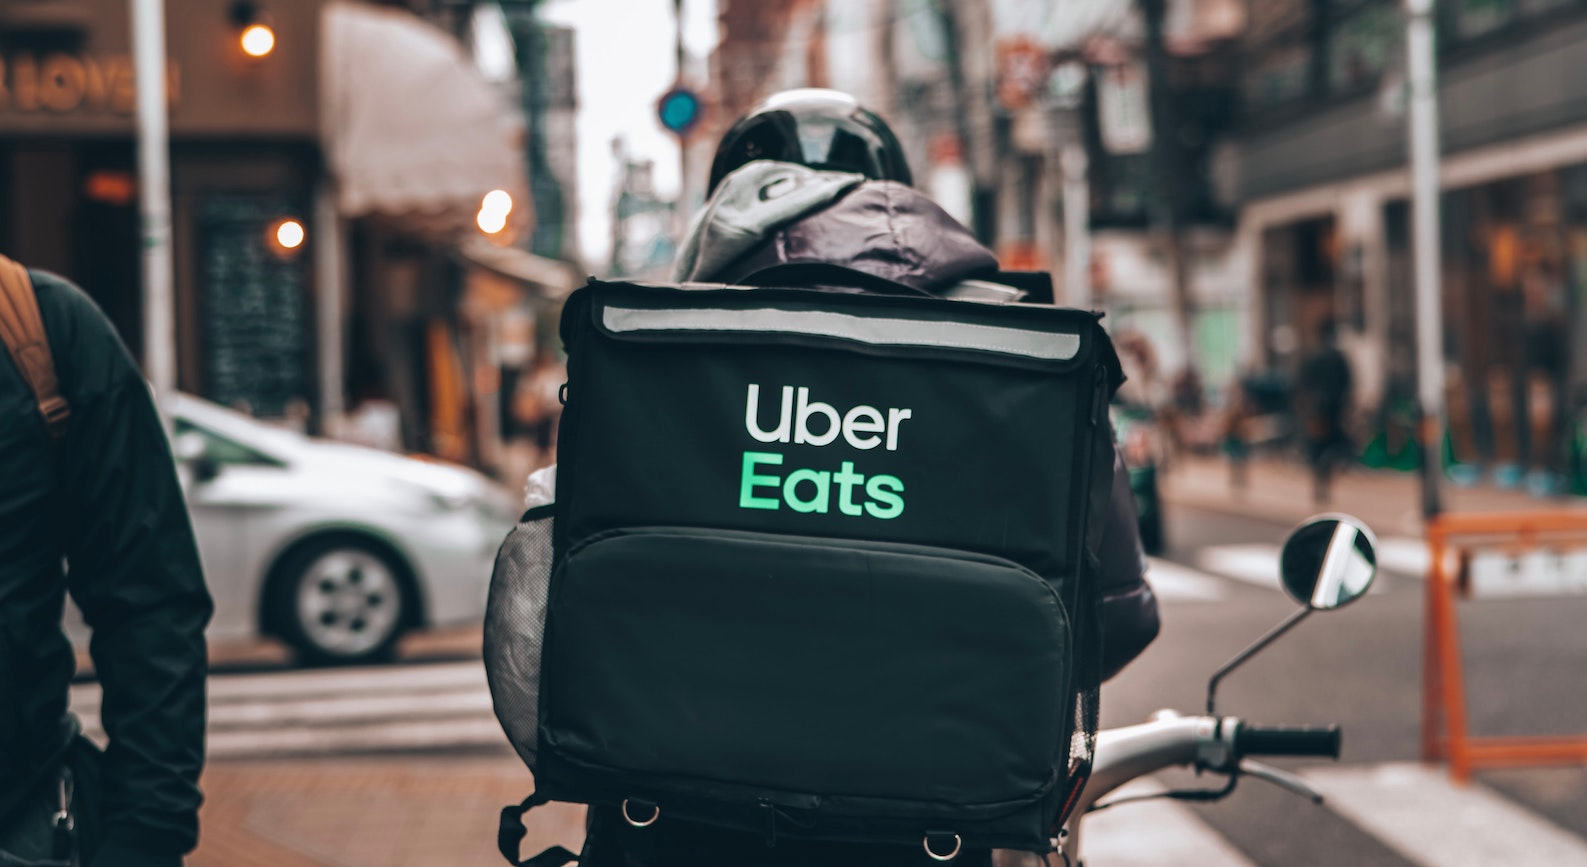 Top 5 Uber Eats alternatives